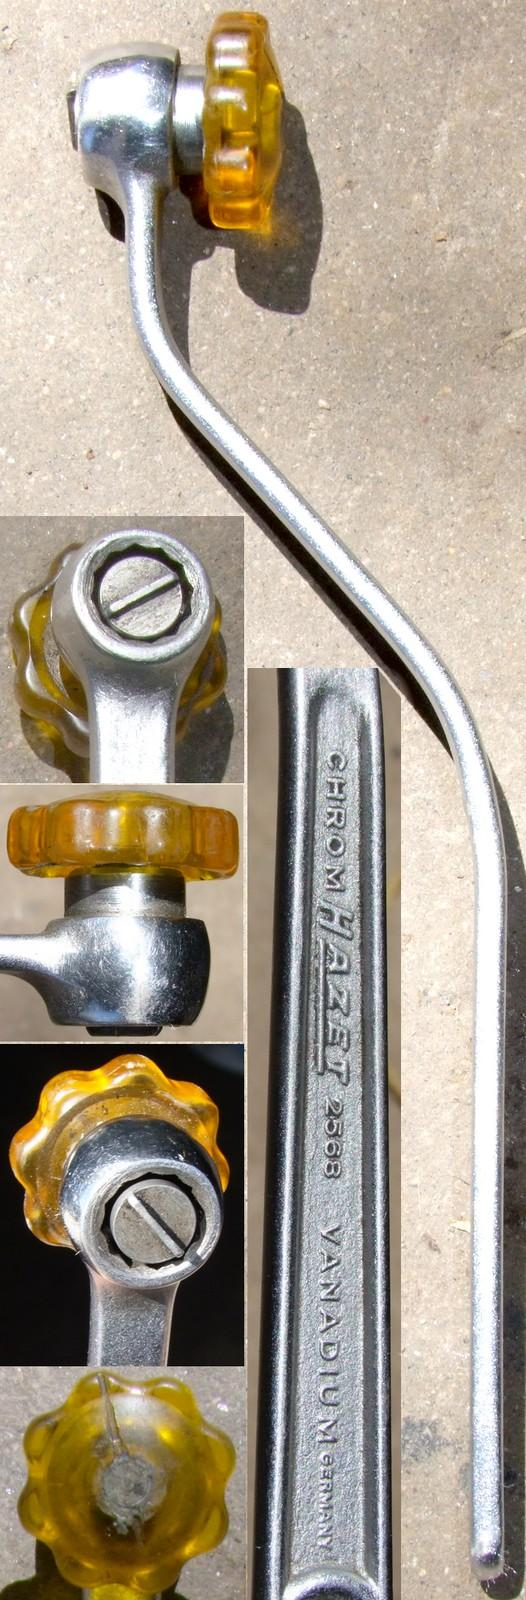 Hazet 2568 valve adjustment tool - more common version